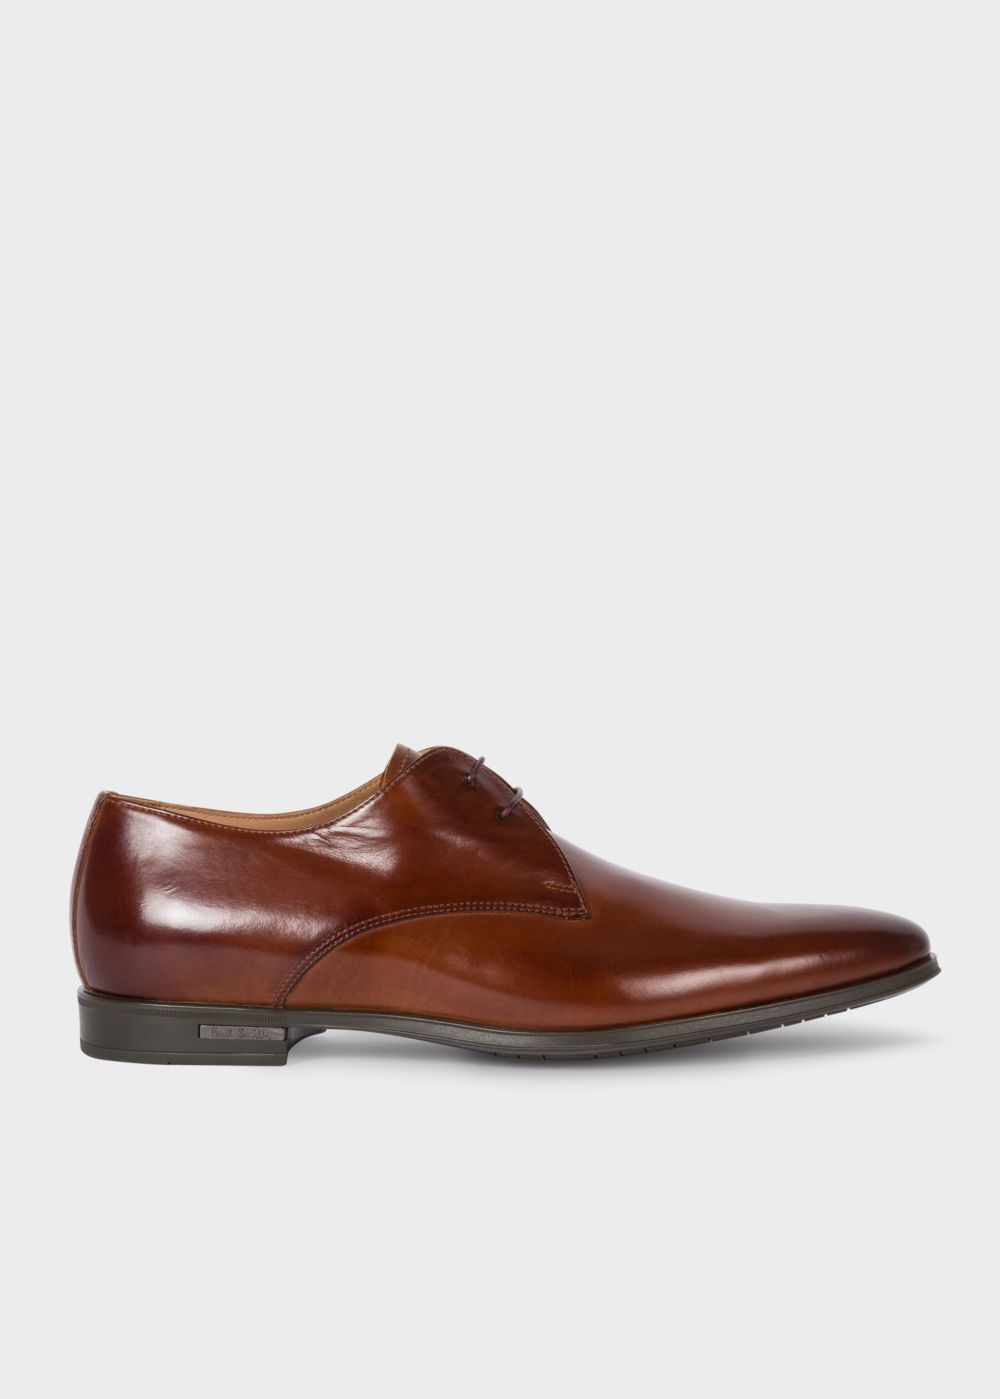 Paul Smith Men's Tan Leather 'Coney' Derby Shoes